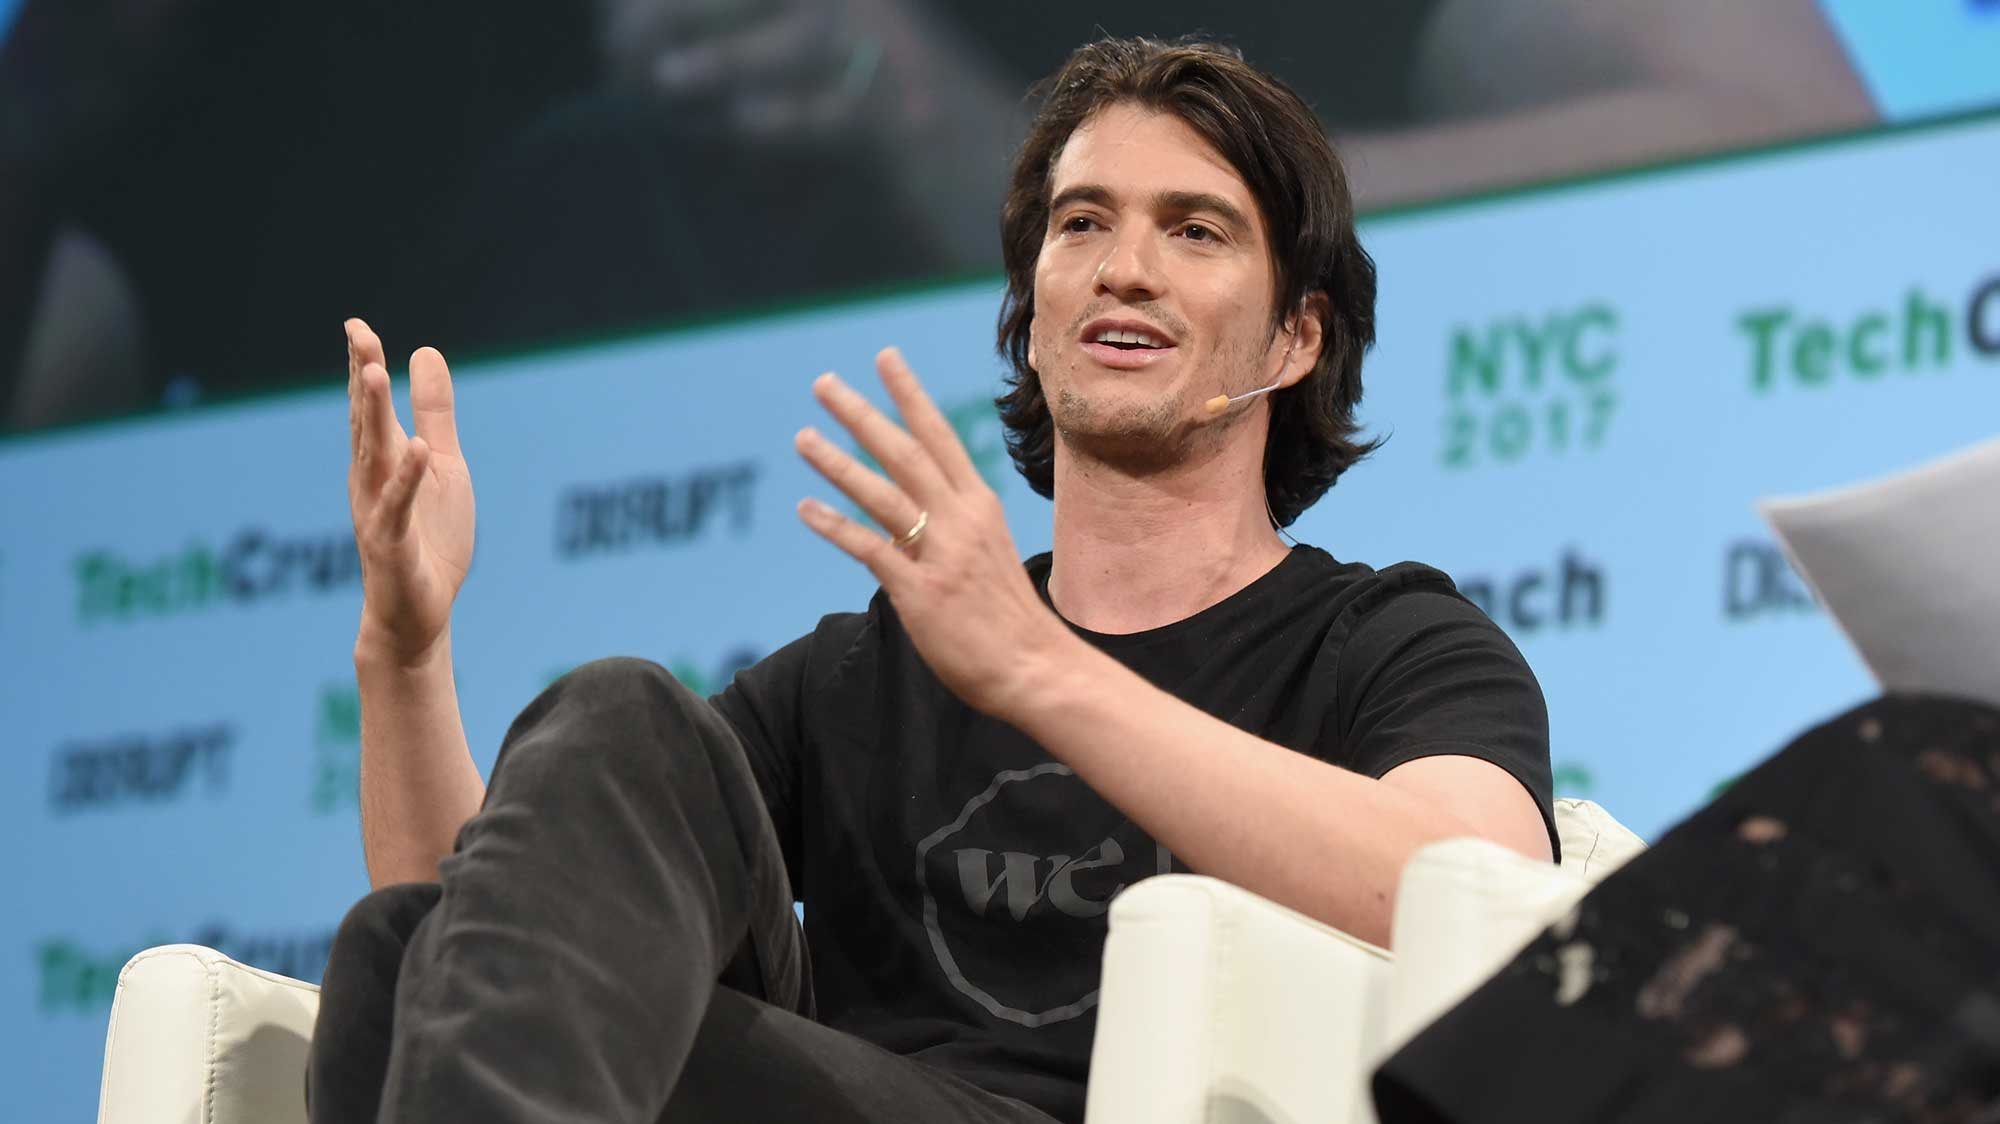 The We Company, better known as WeWork, files confidentially for IPO